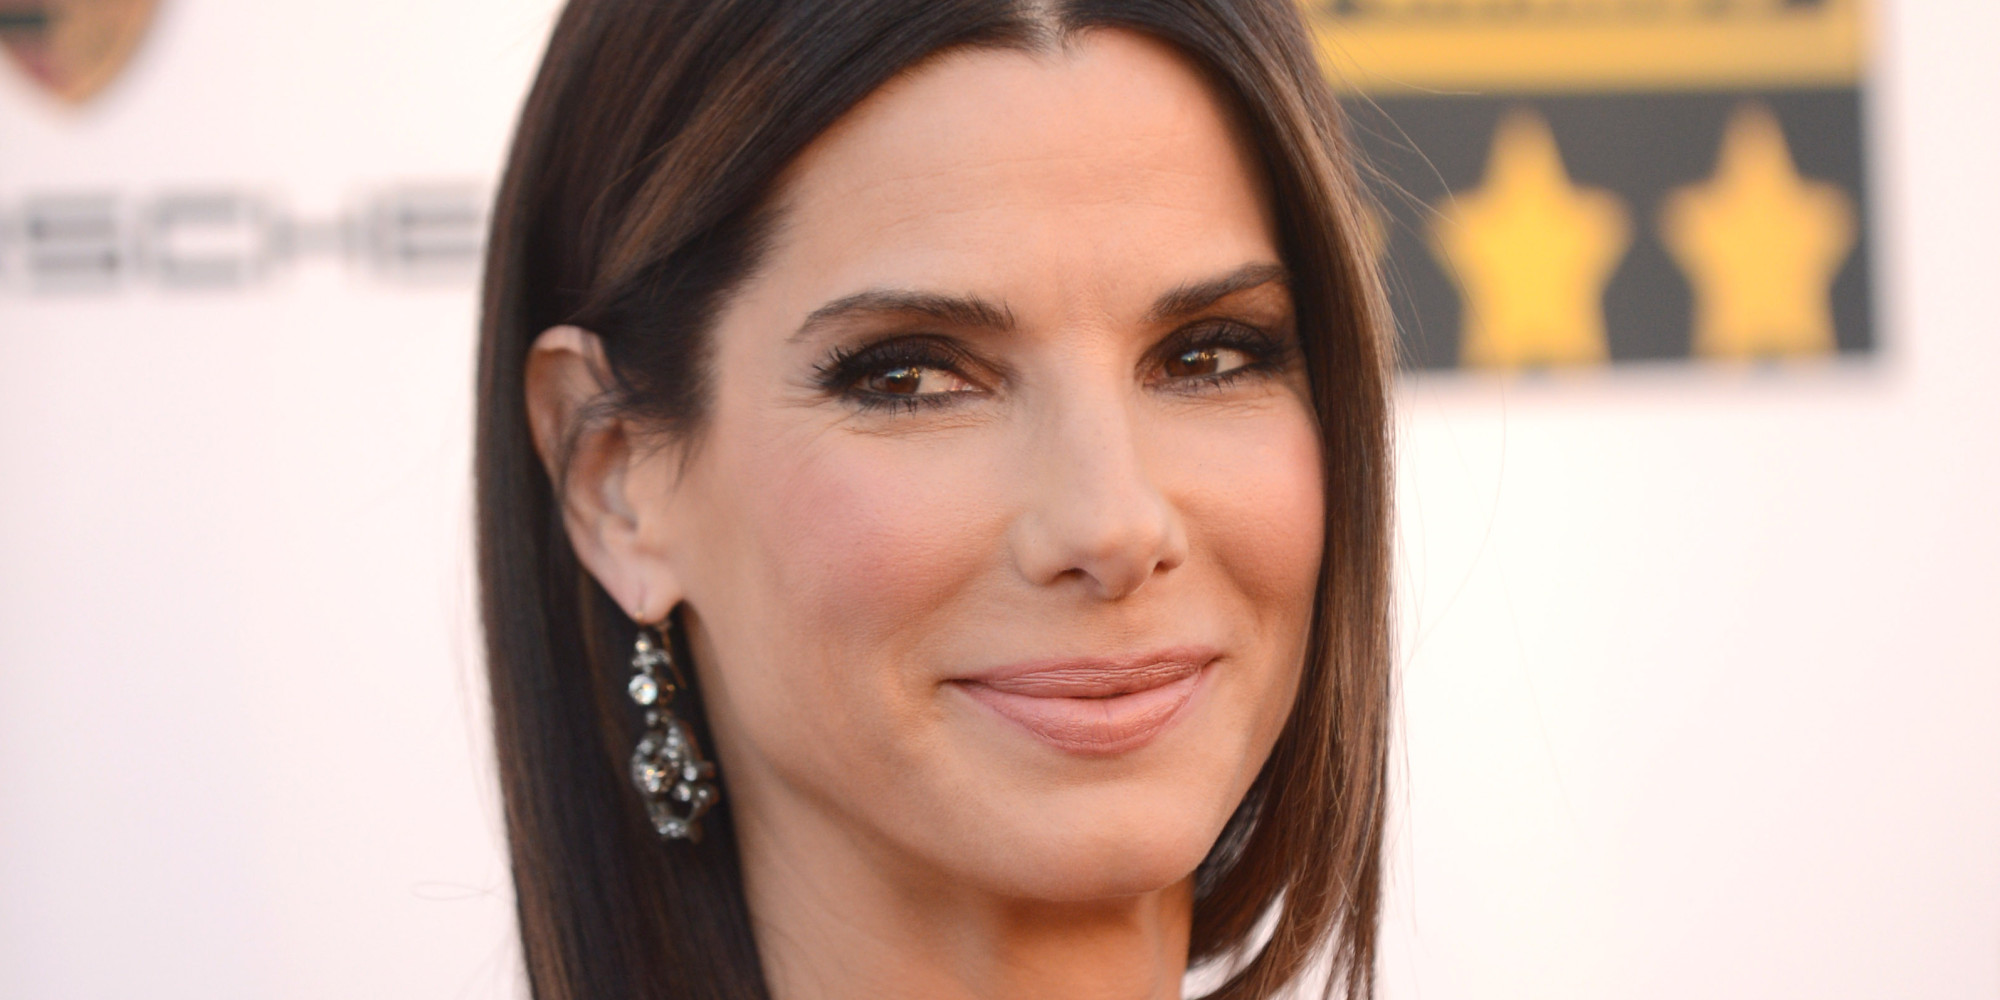 Sandra Bullock Goes Blonde On Set Of 'Our Brand Is Crisis' | The ... Sandra Bullock